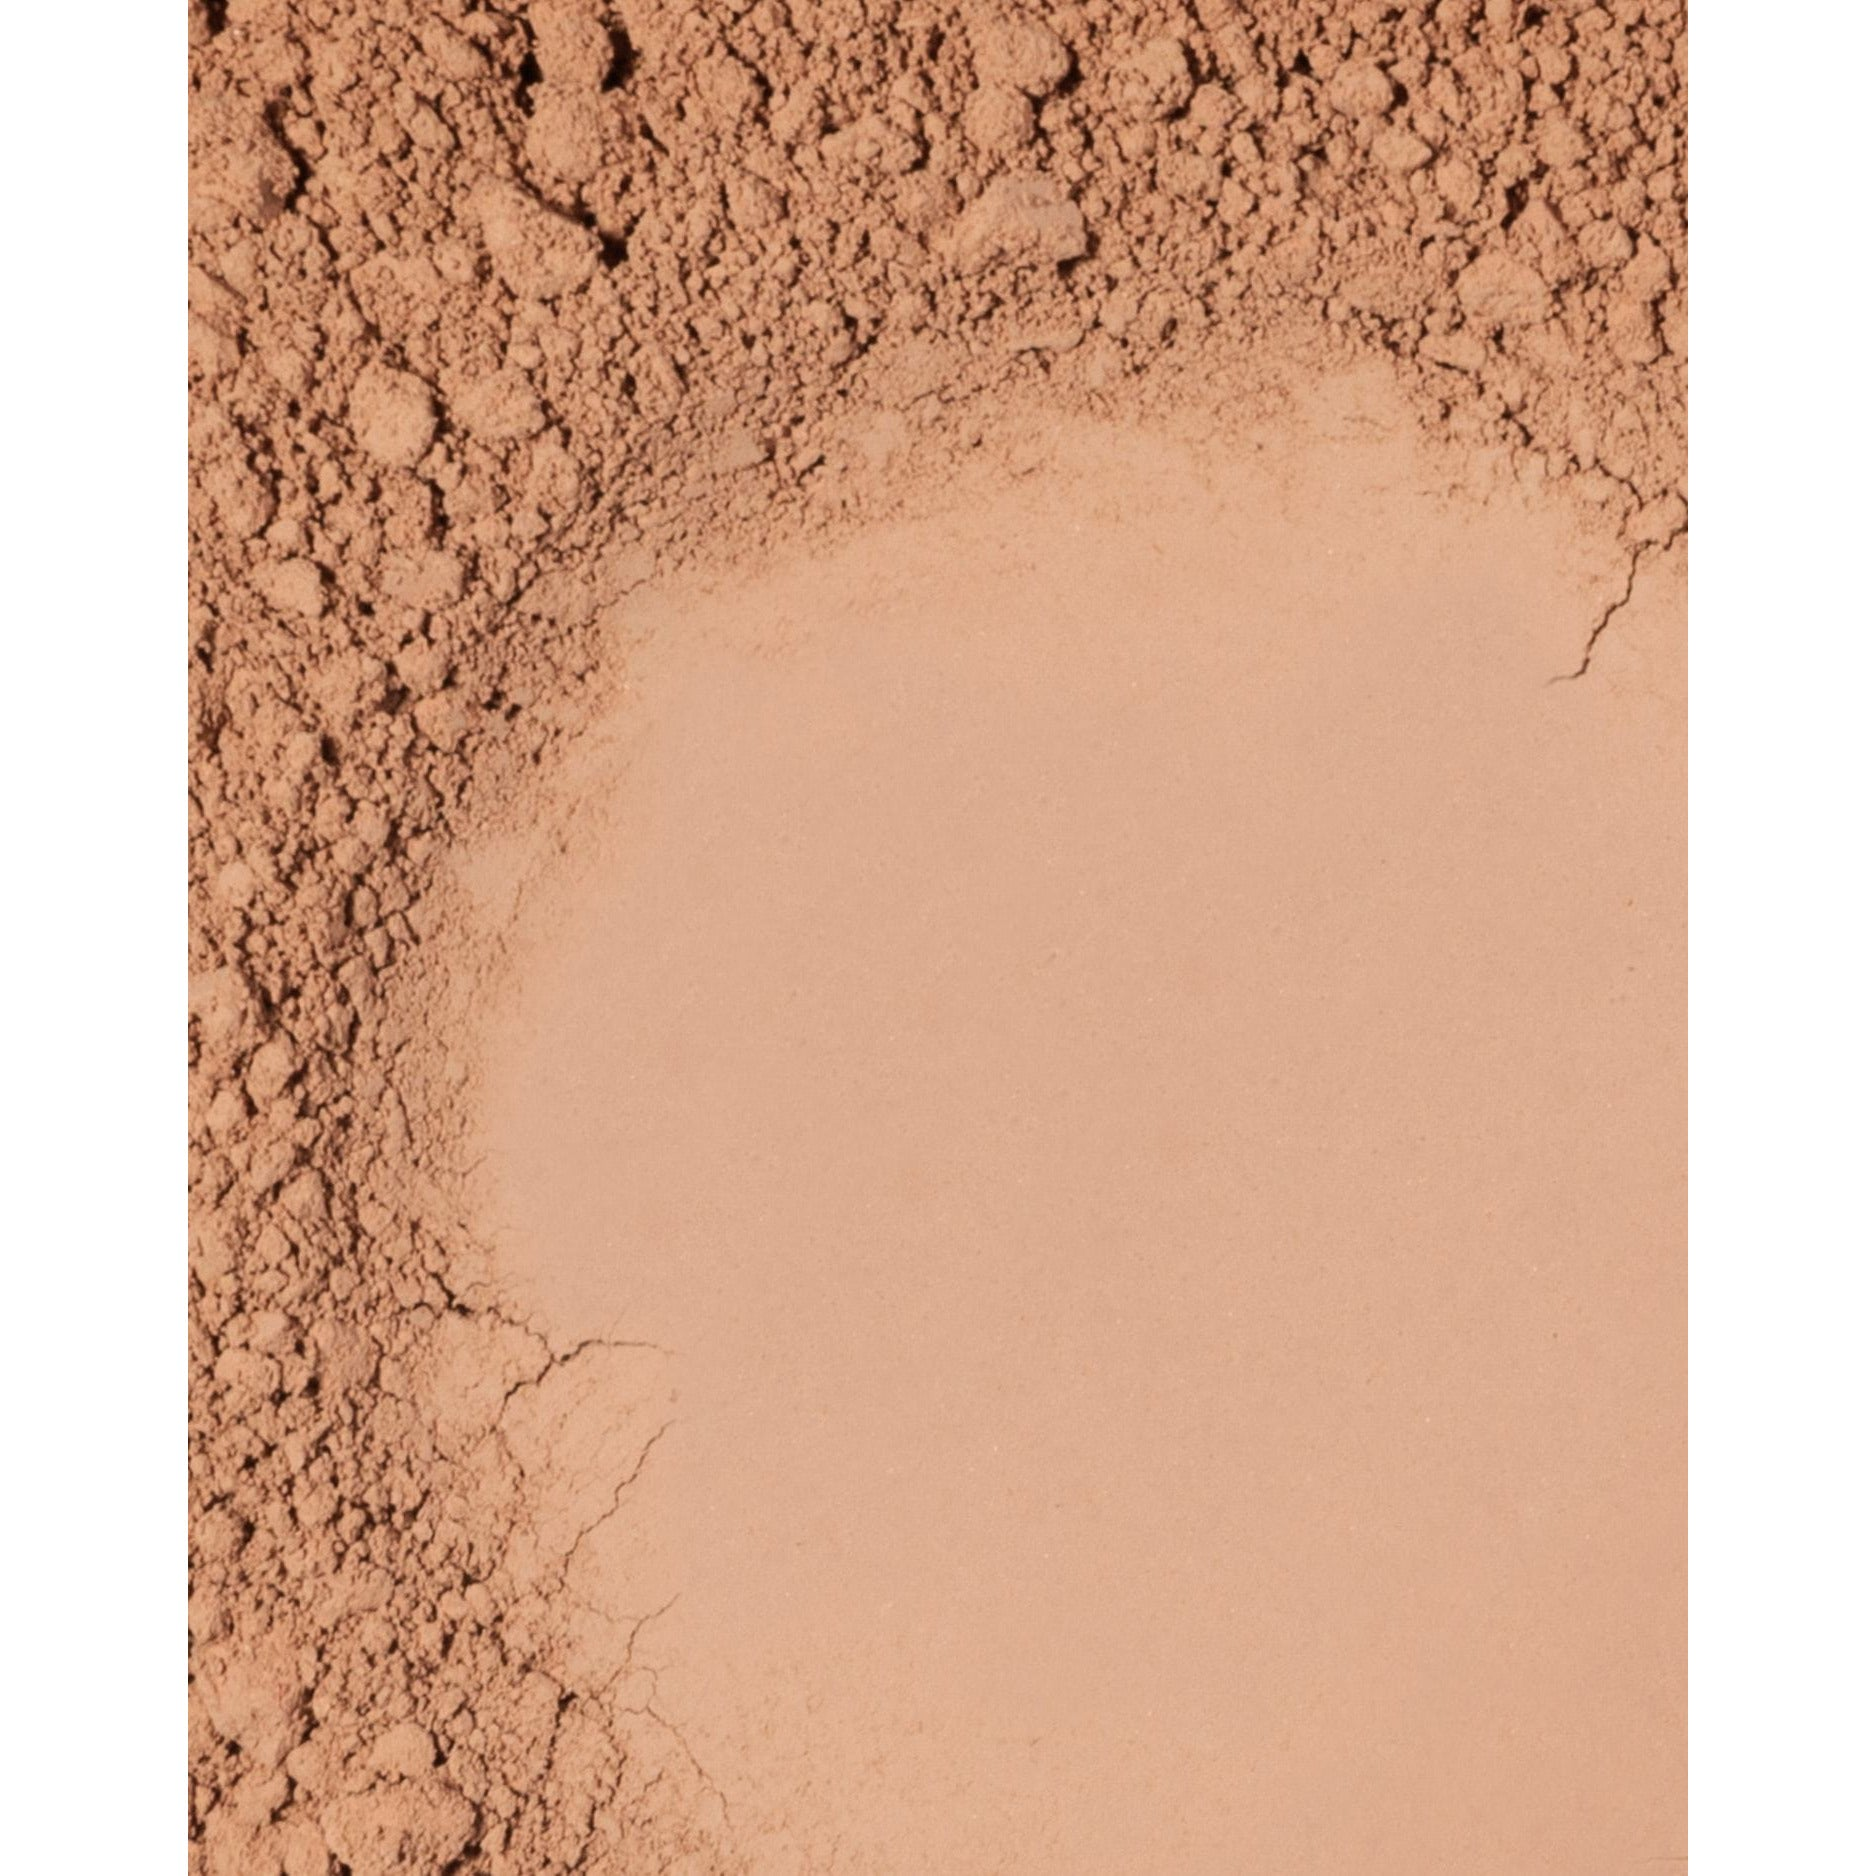 Witty - Omiana Loose Powder Mineral Foundation No Titanium Dioxide and No Mica